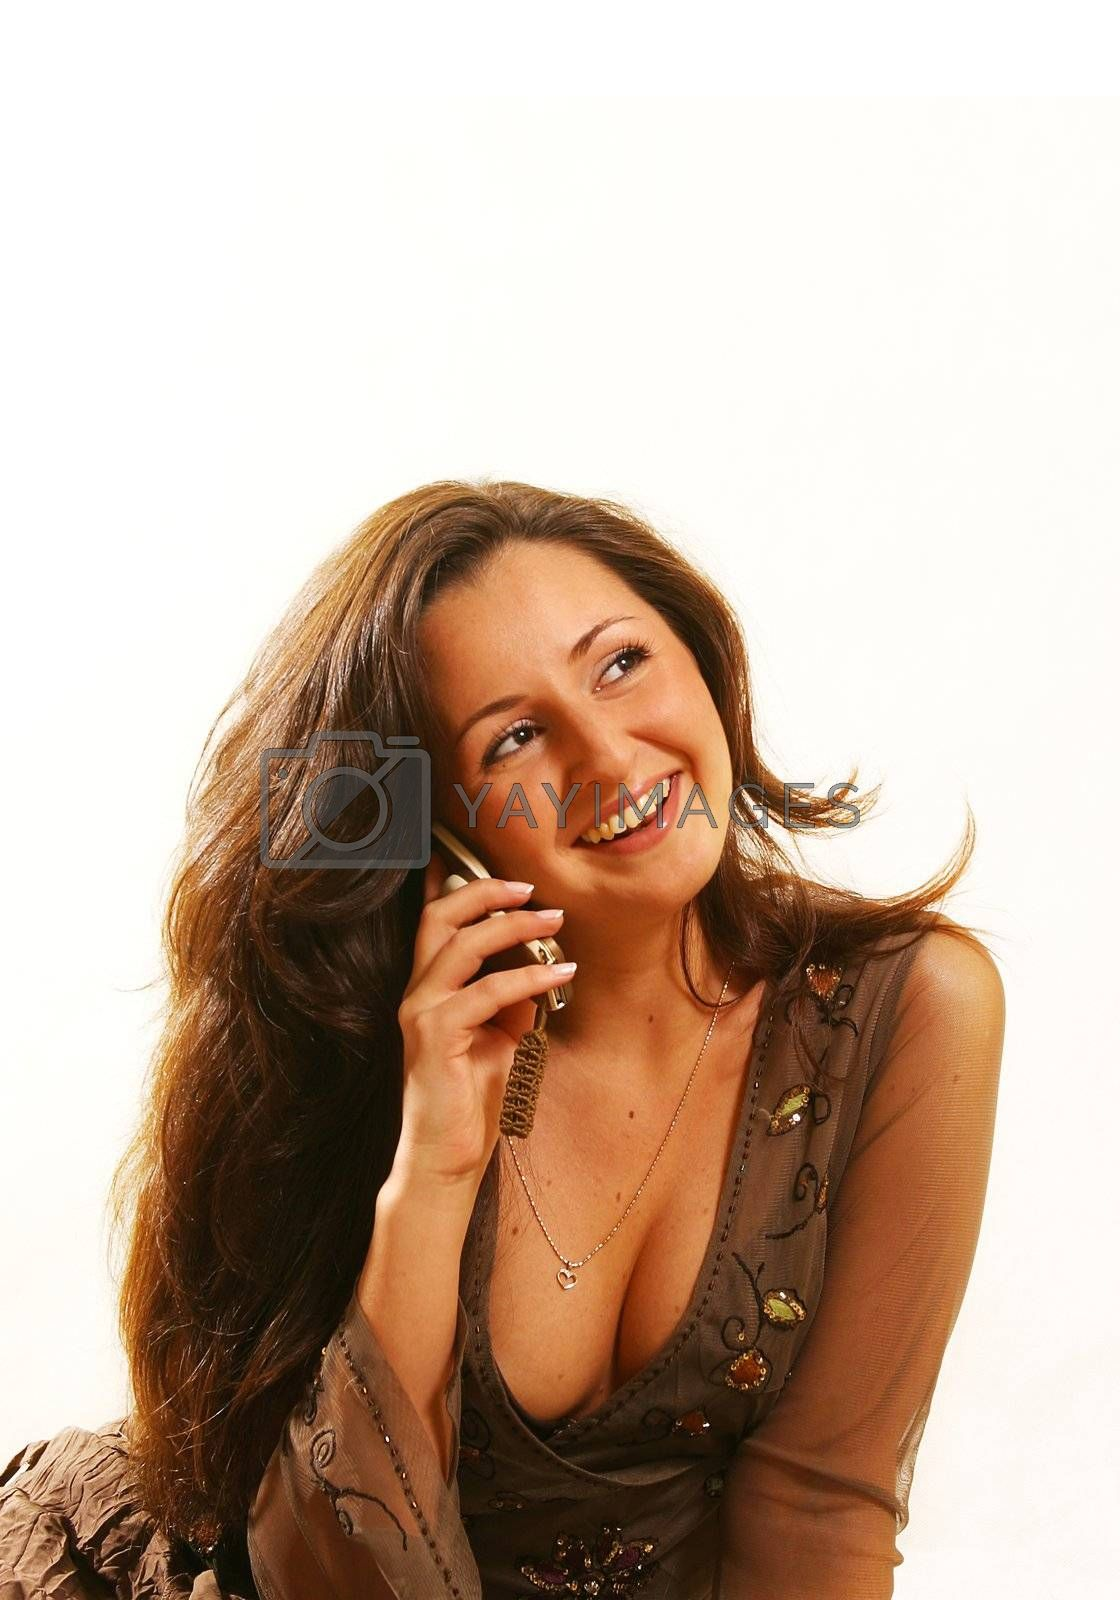 The image of the beautiful woman with the phone